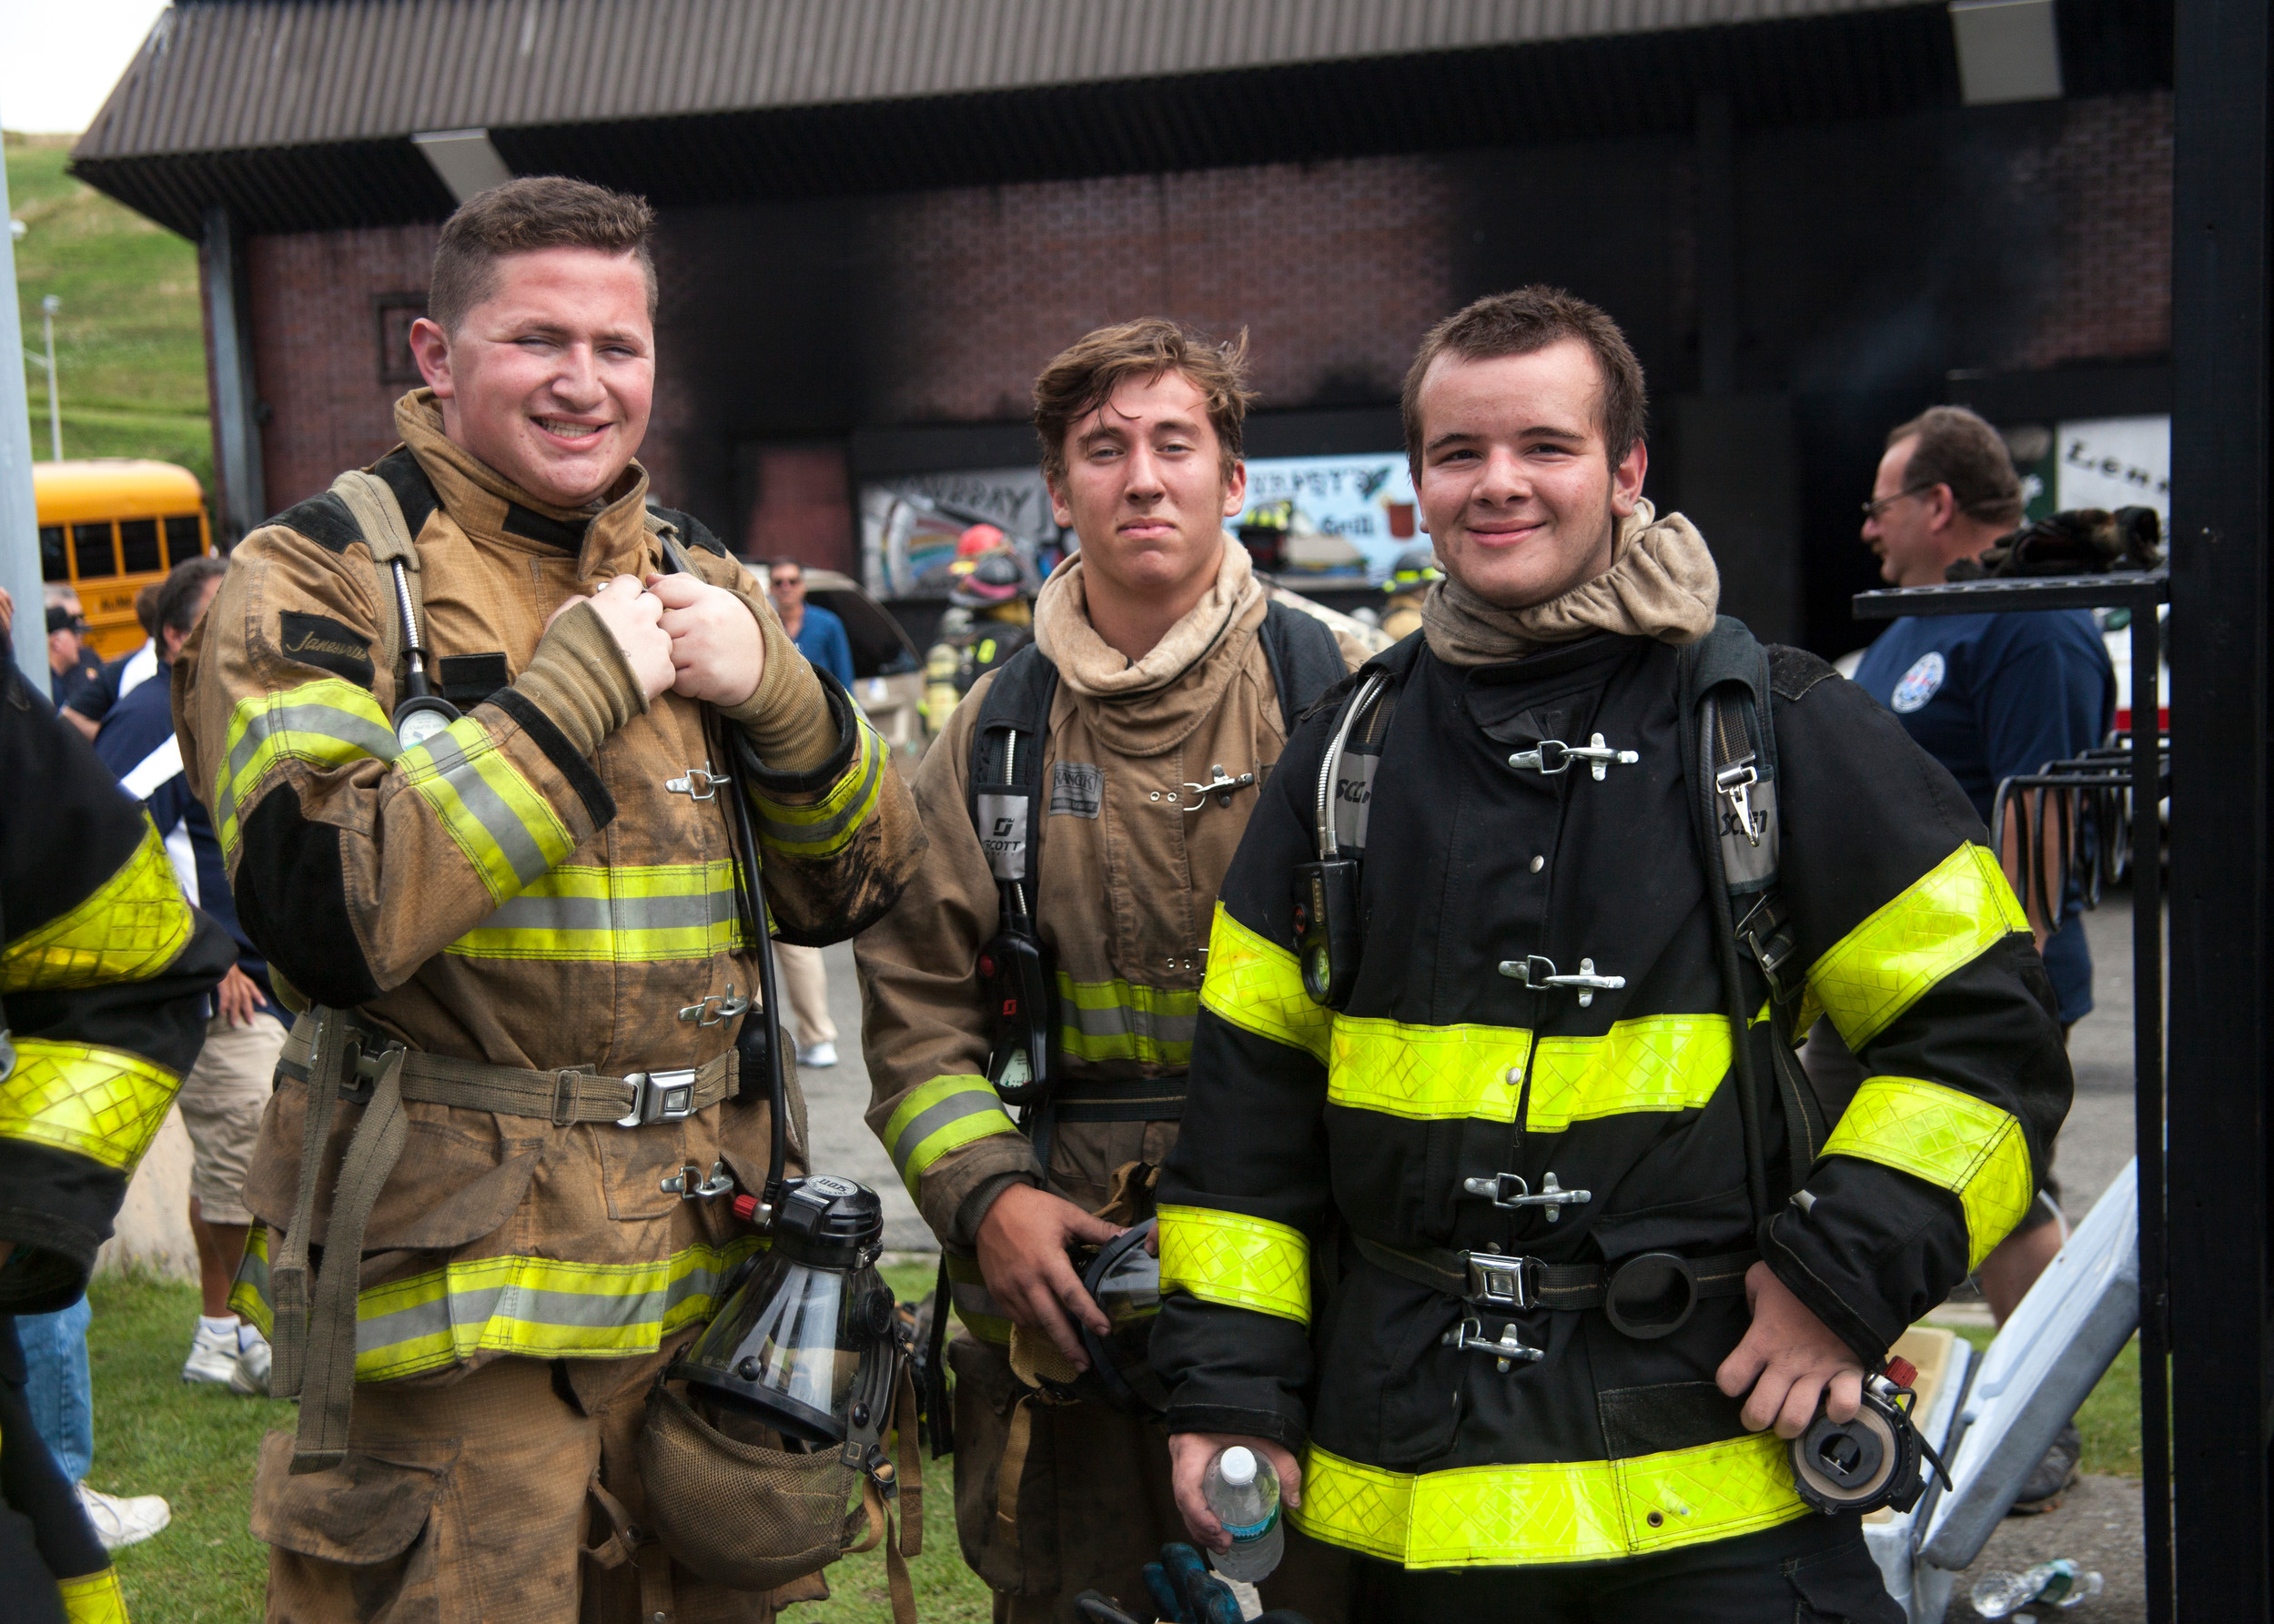 Jr Firefighters Mason Kletter of Glen Cove, Louis Sabatino of Franklin Square and Nicholas Capone of East Rockaway finished up the Warehouse fire exercise where the firefighters crawl into a burning warehouse at the facility fully outfitted in the same gear as actual fire fighters, including air tanks, and feel the heat and smoke before crawling out to take turns manning the hoses to extinguish the blaze.